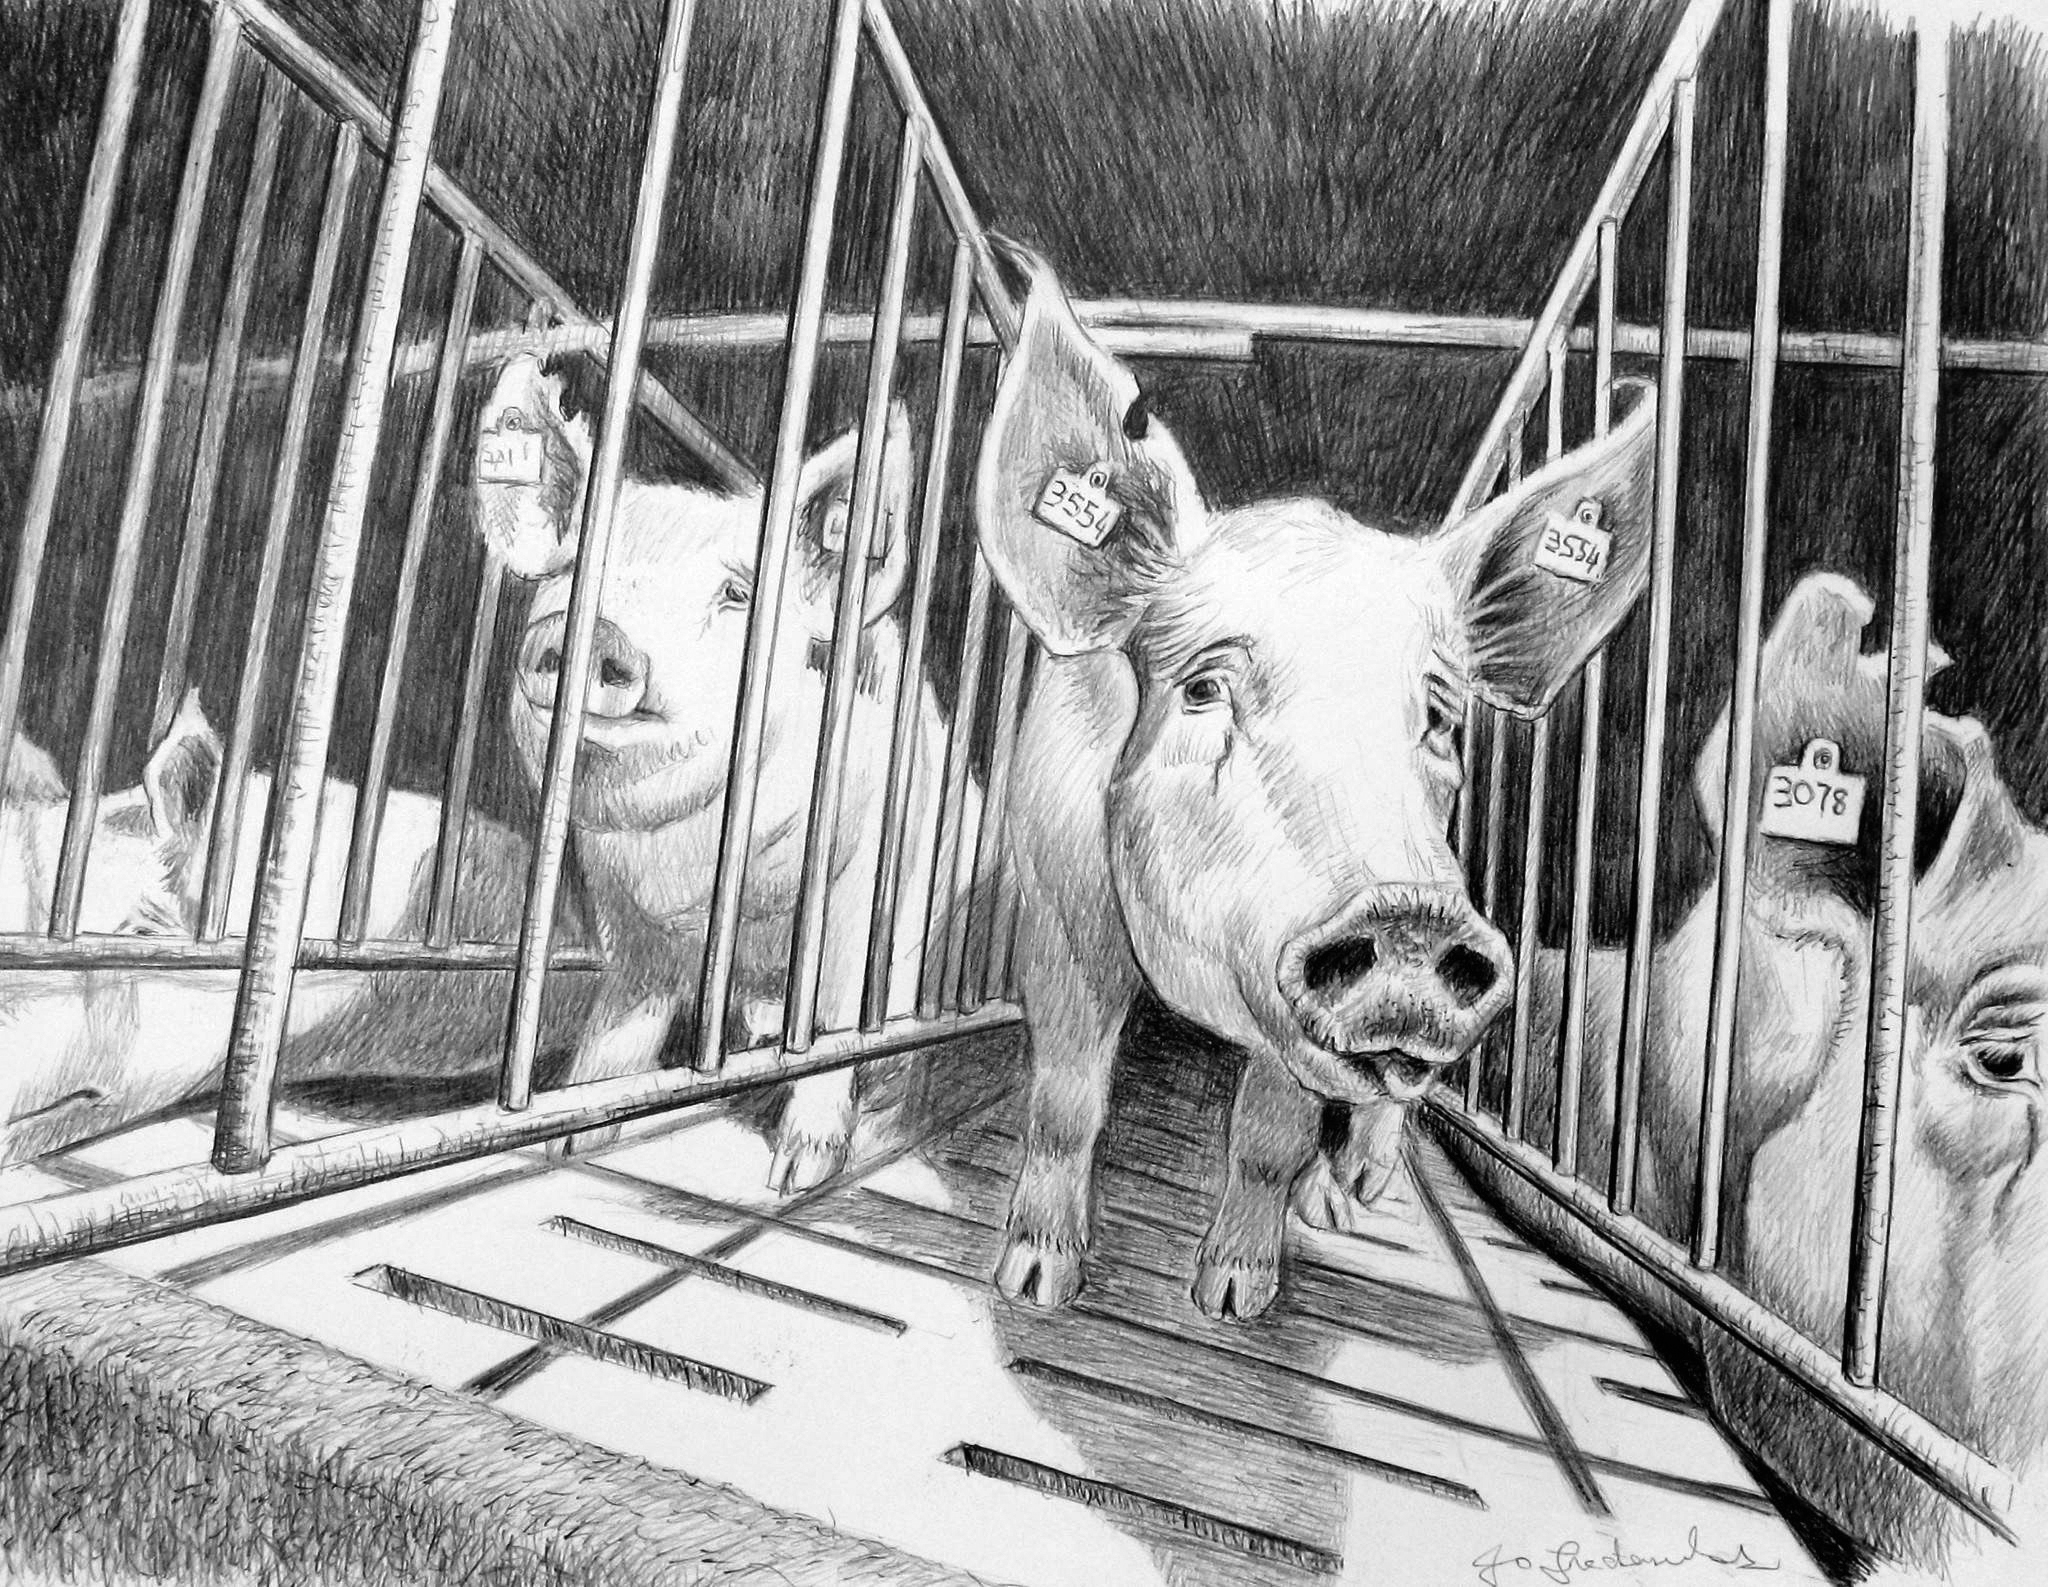 Jo Frederiks - Factory Farming: Industrialised Cruelty